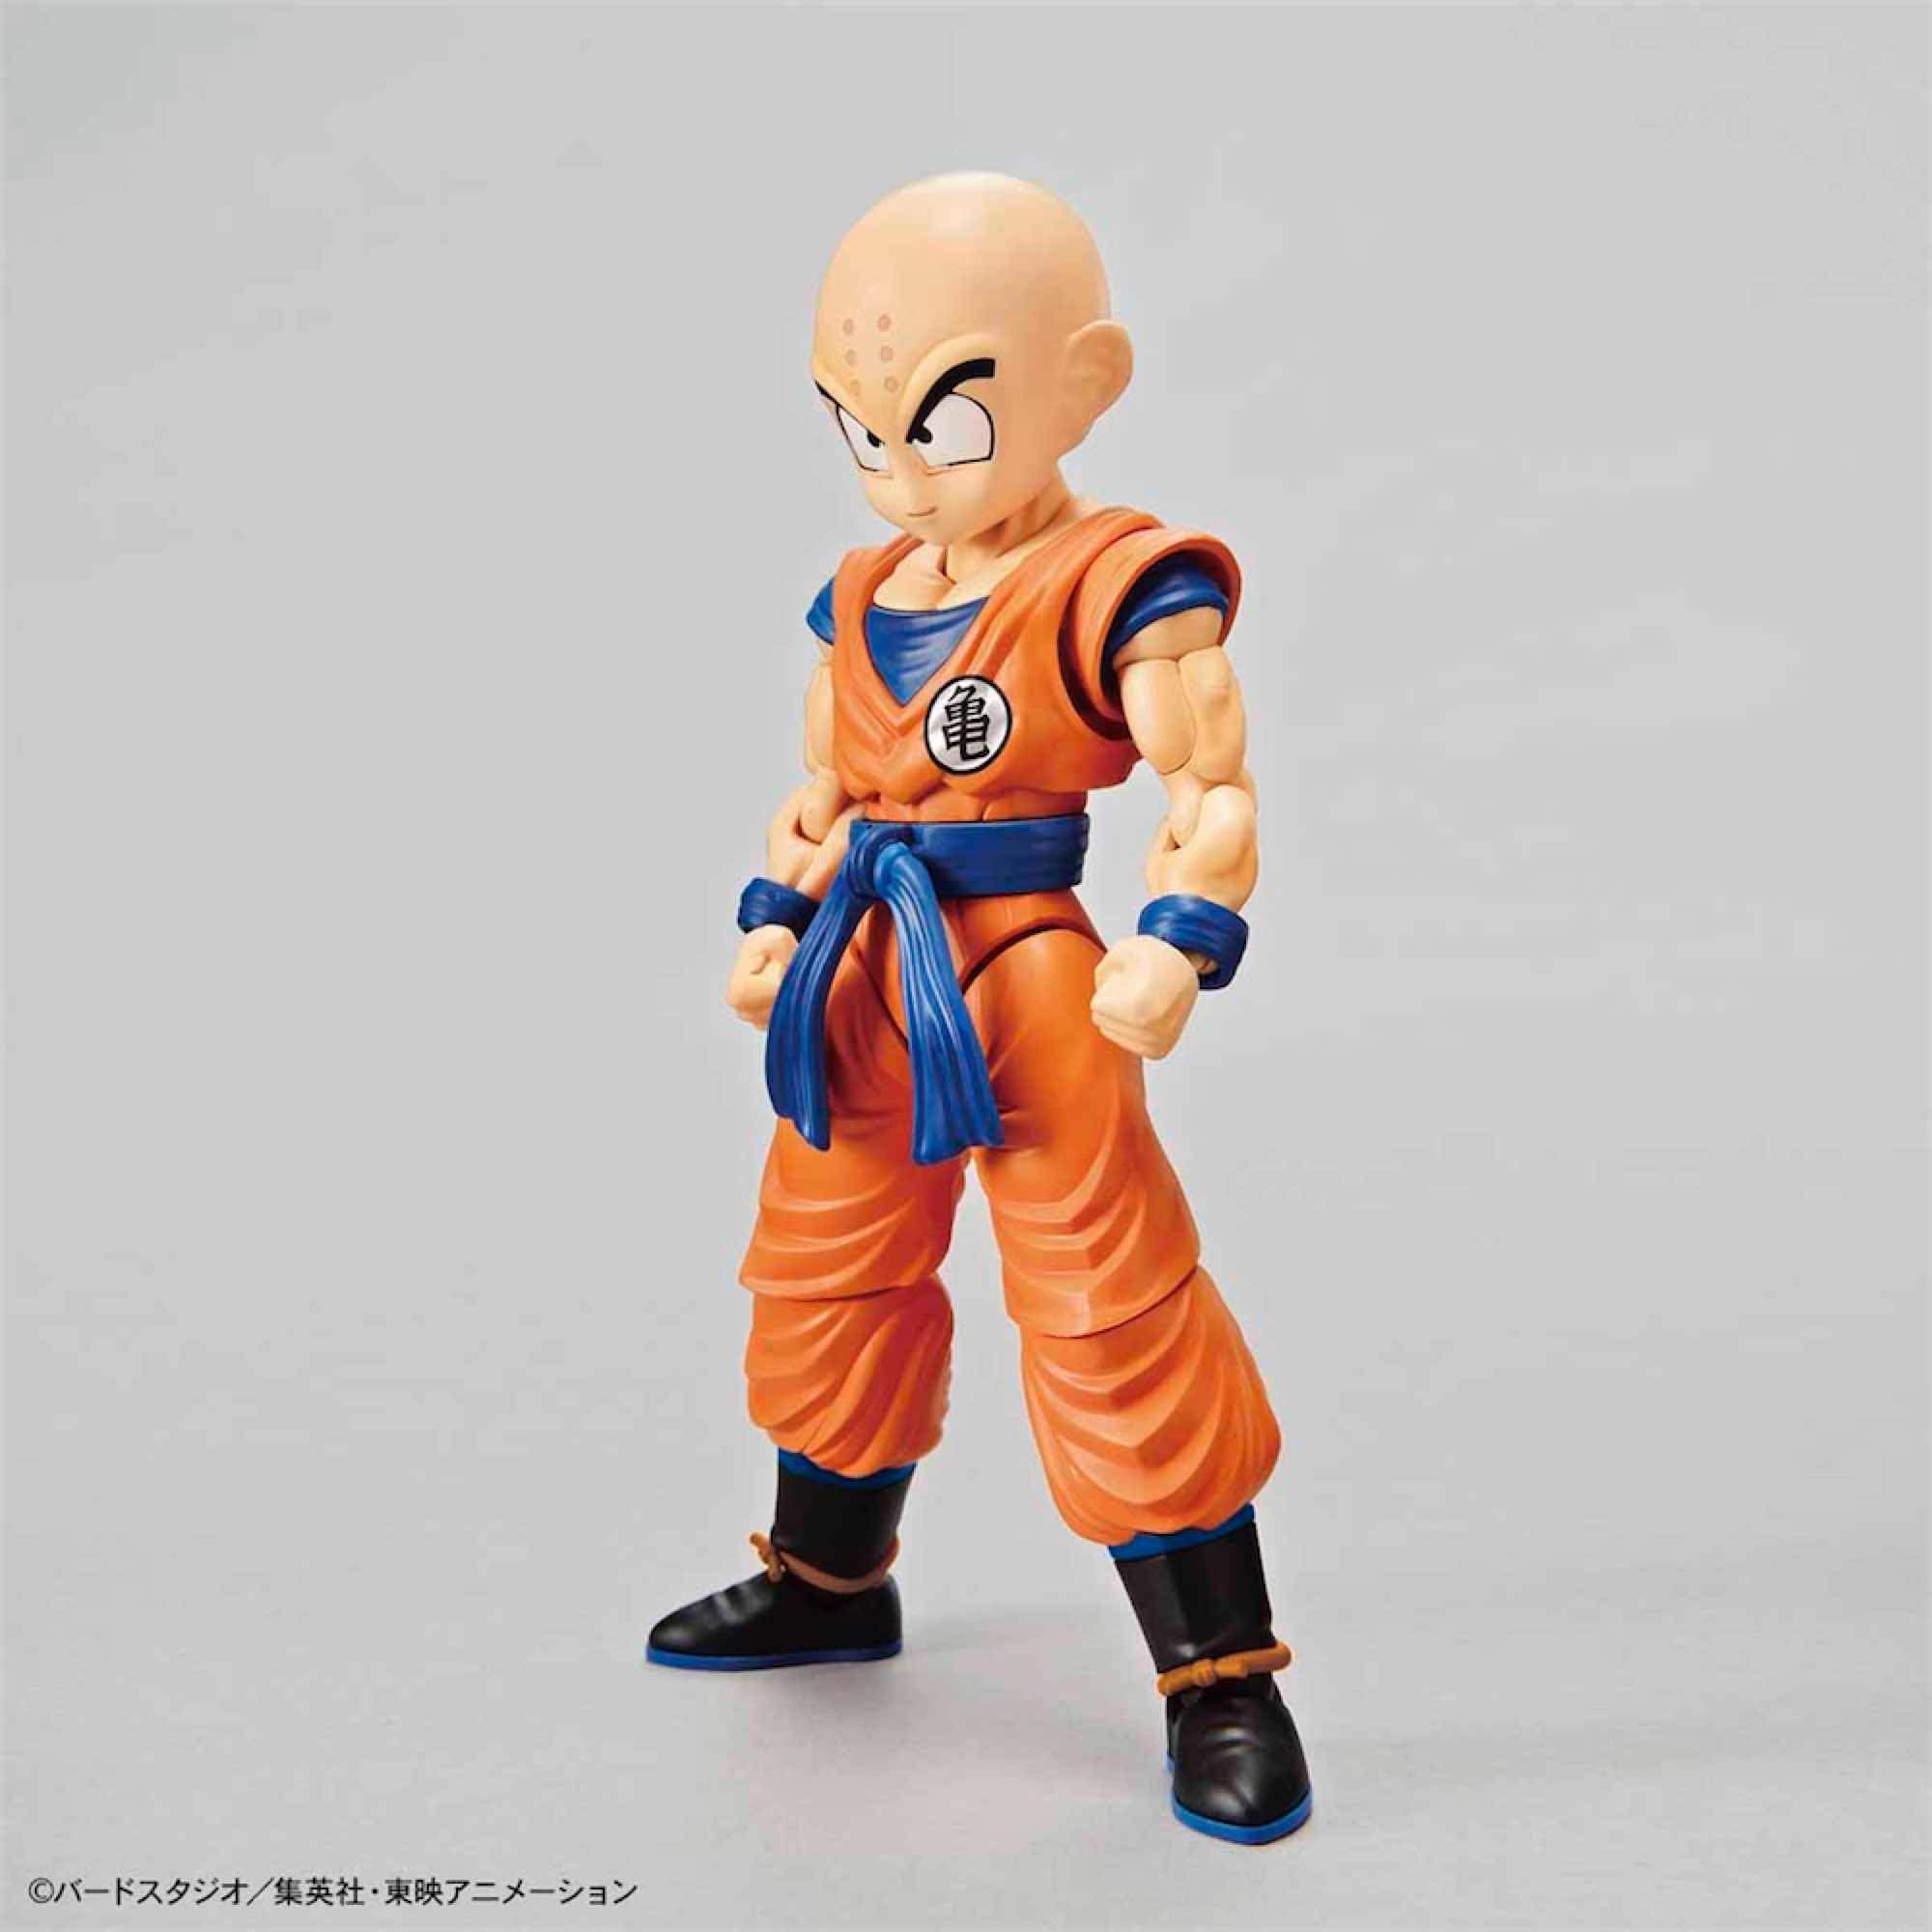 KRILIN SET MODEL KIT FIGURA 14 CM DRAGON BALL Z FIGURE-RISE STANDARD 83857P